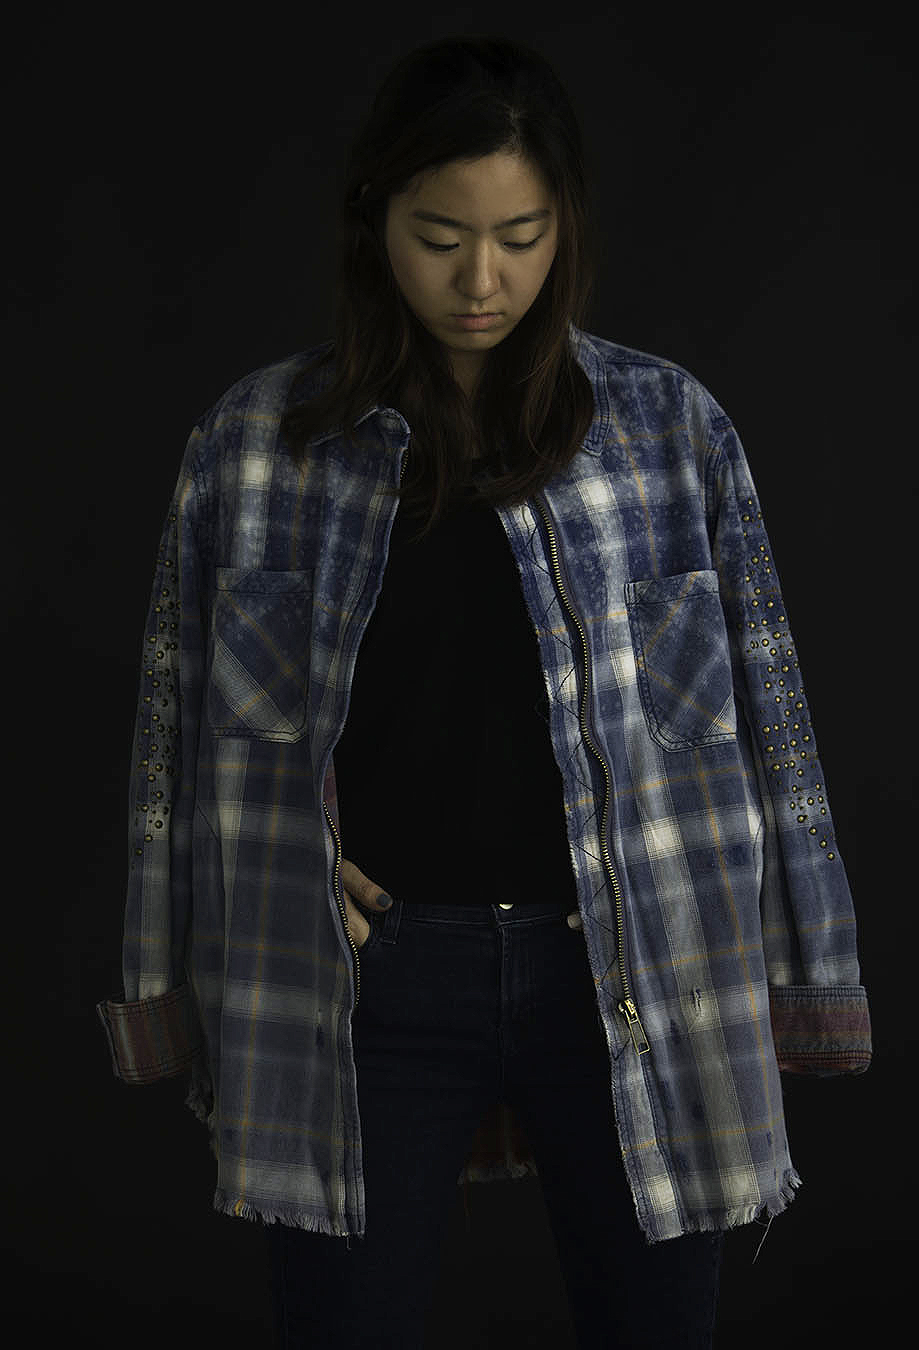 Joy_Lewis_fashion_photography_JACKETS_FLANNEL_WITH_STUDS_OVER_SHOULDERS